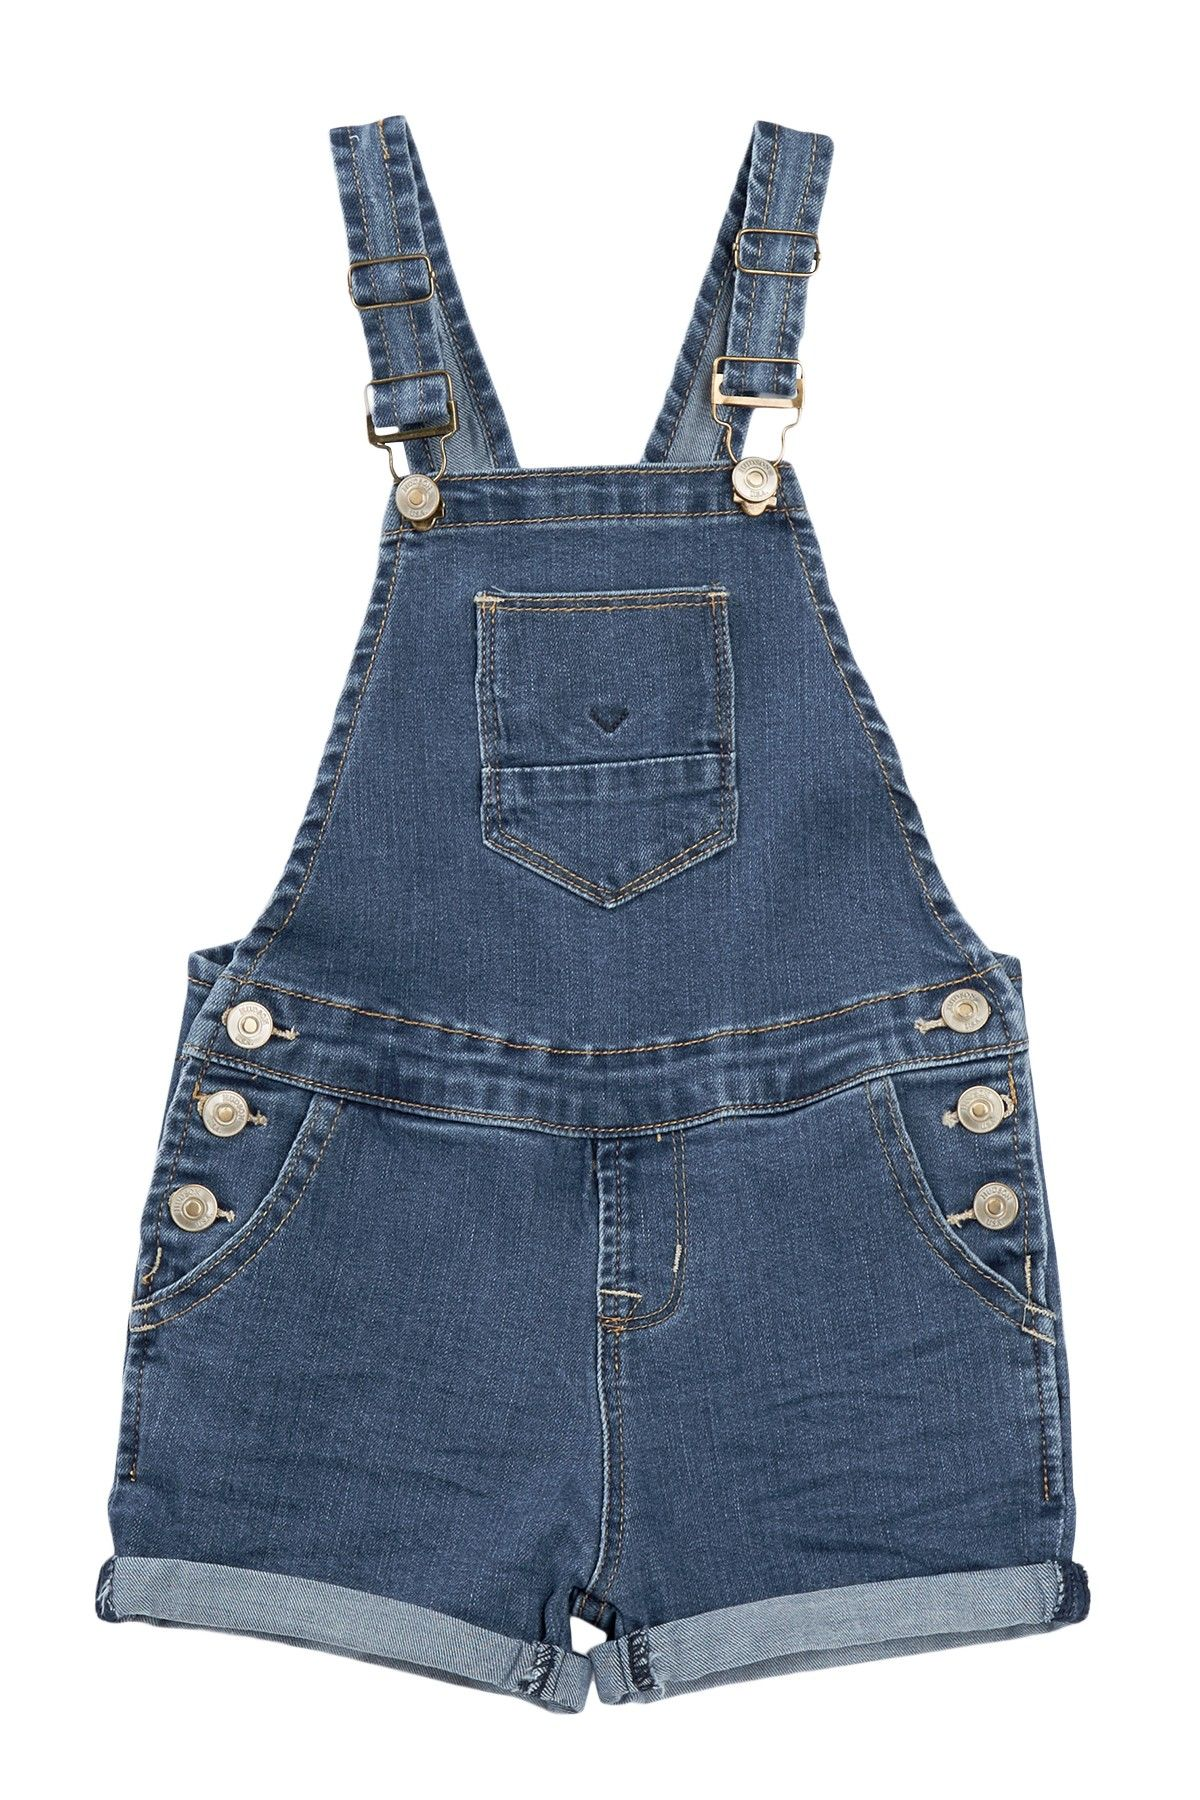 afb80d3f5 HUDSON Jeans Overalls for toddler girls! Too cute | For the Kiddos ...